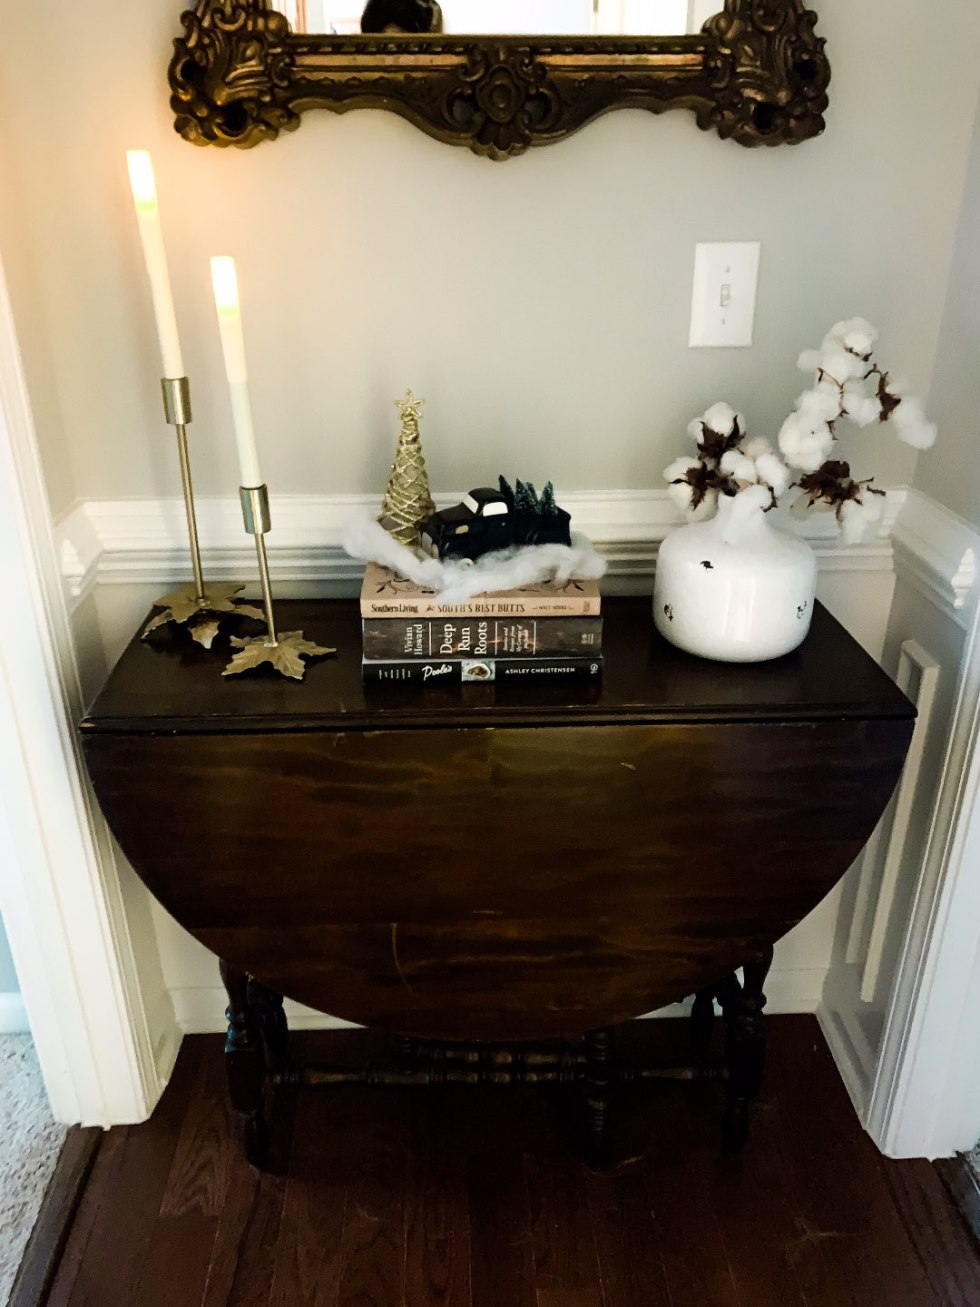 Holiday Home Decor Tour - I'm Fixin' To - @mbg0112 | Holiday Home Decor Tour by popular North Carolina life and style blog, I'm Fixin' To: image of a hallway table with taper candles, a gold Christmas tree, and a black pick up truck with mini Christmas tree in it.